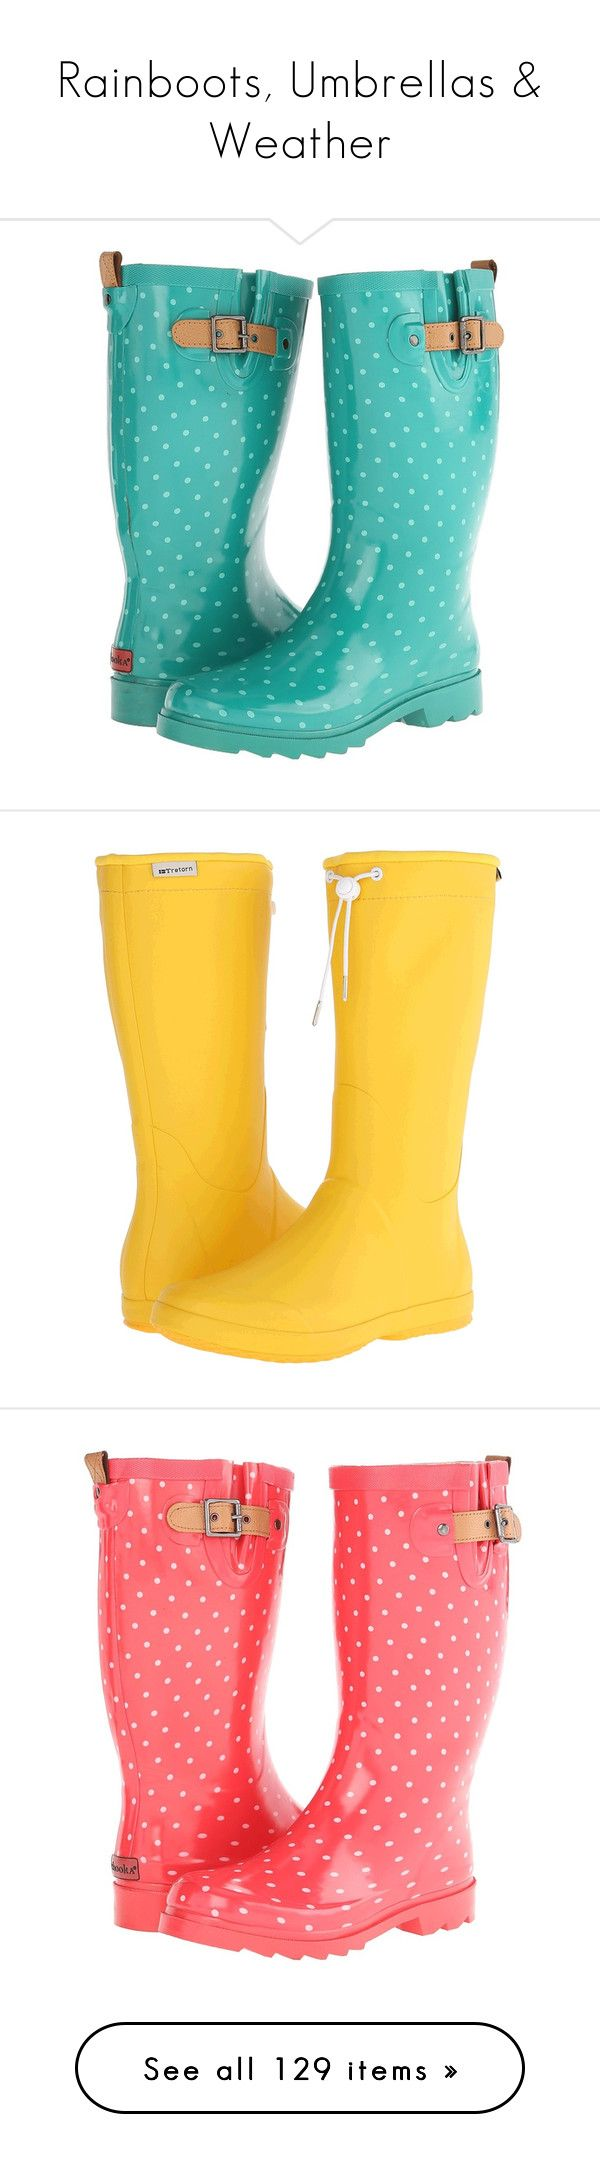 """""""Rainboots, Umbrellas & Weather"""" by bluecatreview13 ❤ liked on Polyvore featuring shoes, boots, rain boots, feet wear, jungle green, mid-calf boots, slip on shoes, polka dot rubber boots, mid boots and slip on rubber boots"""